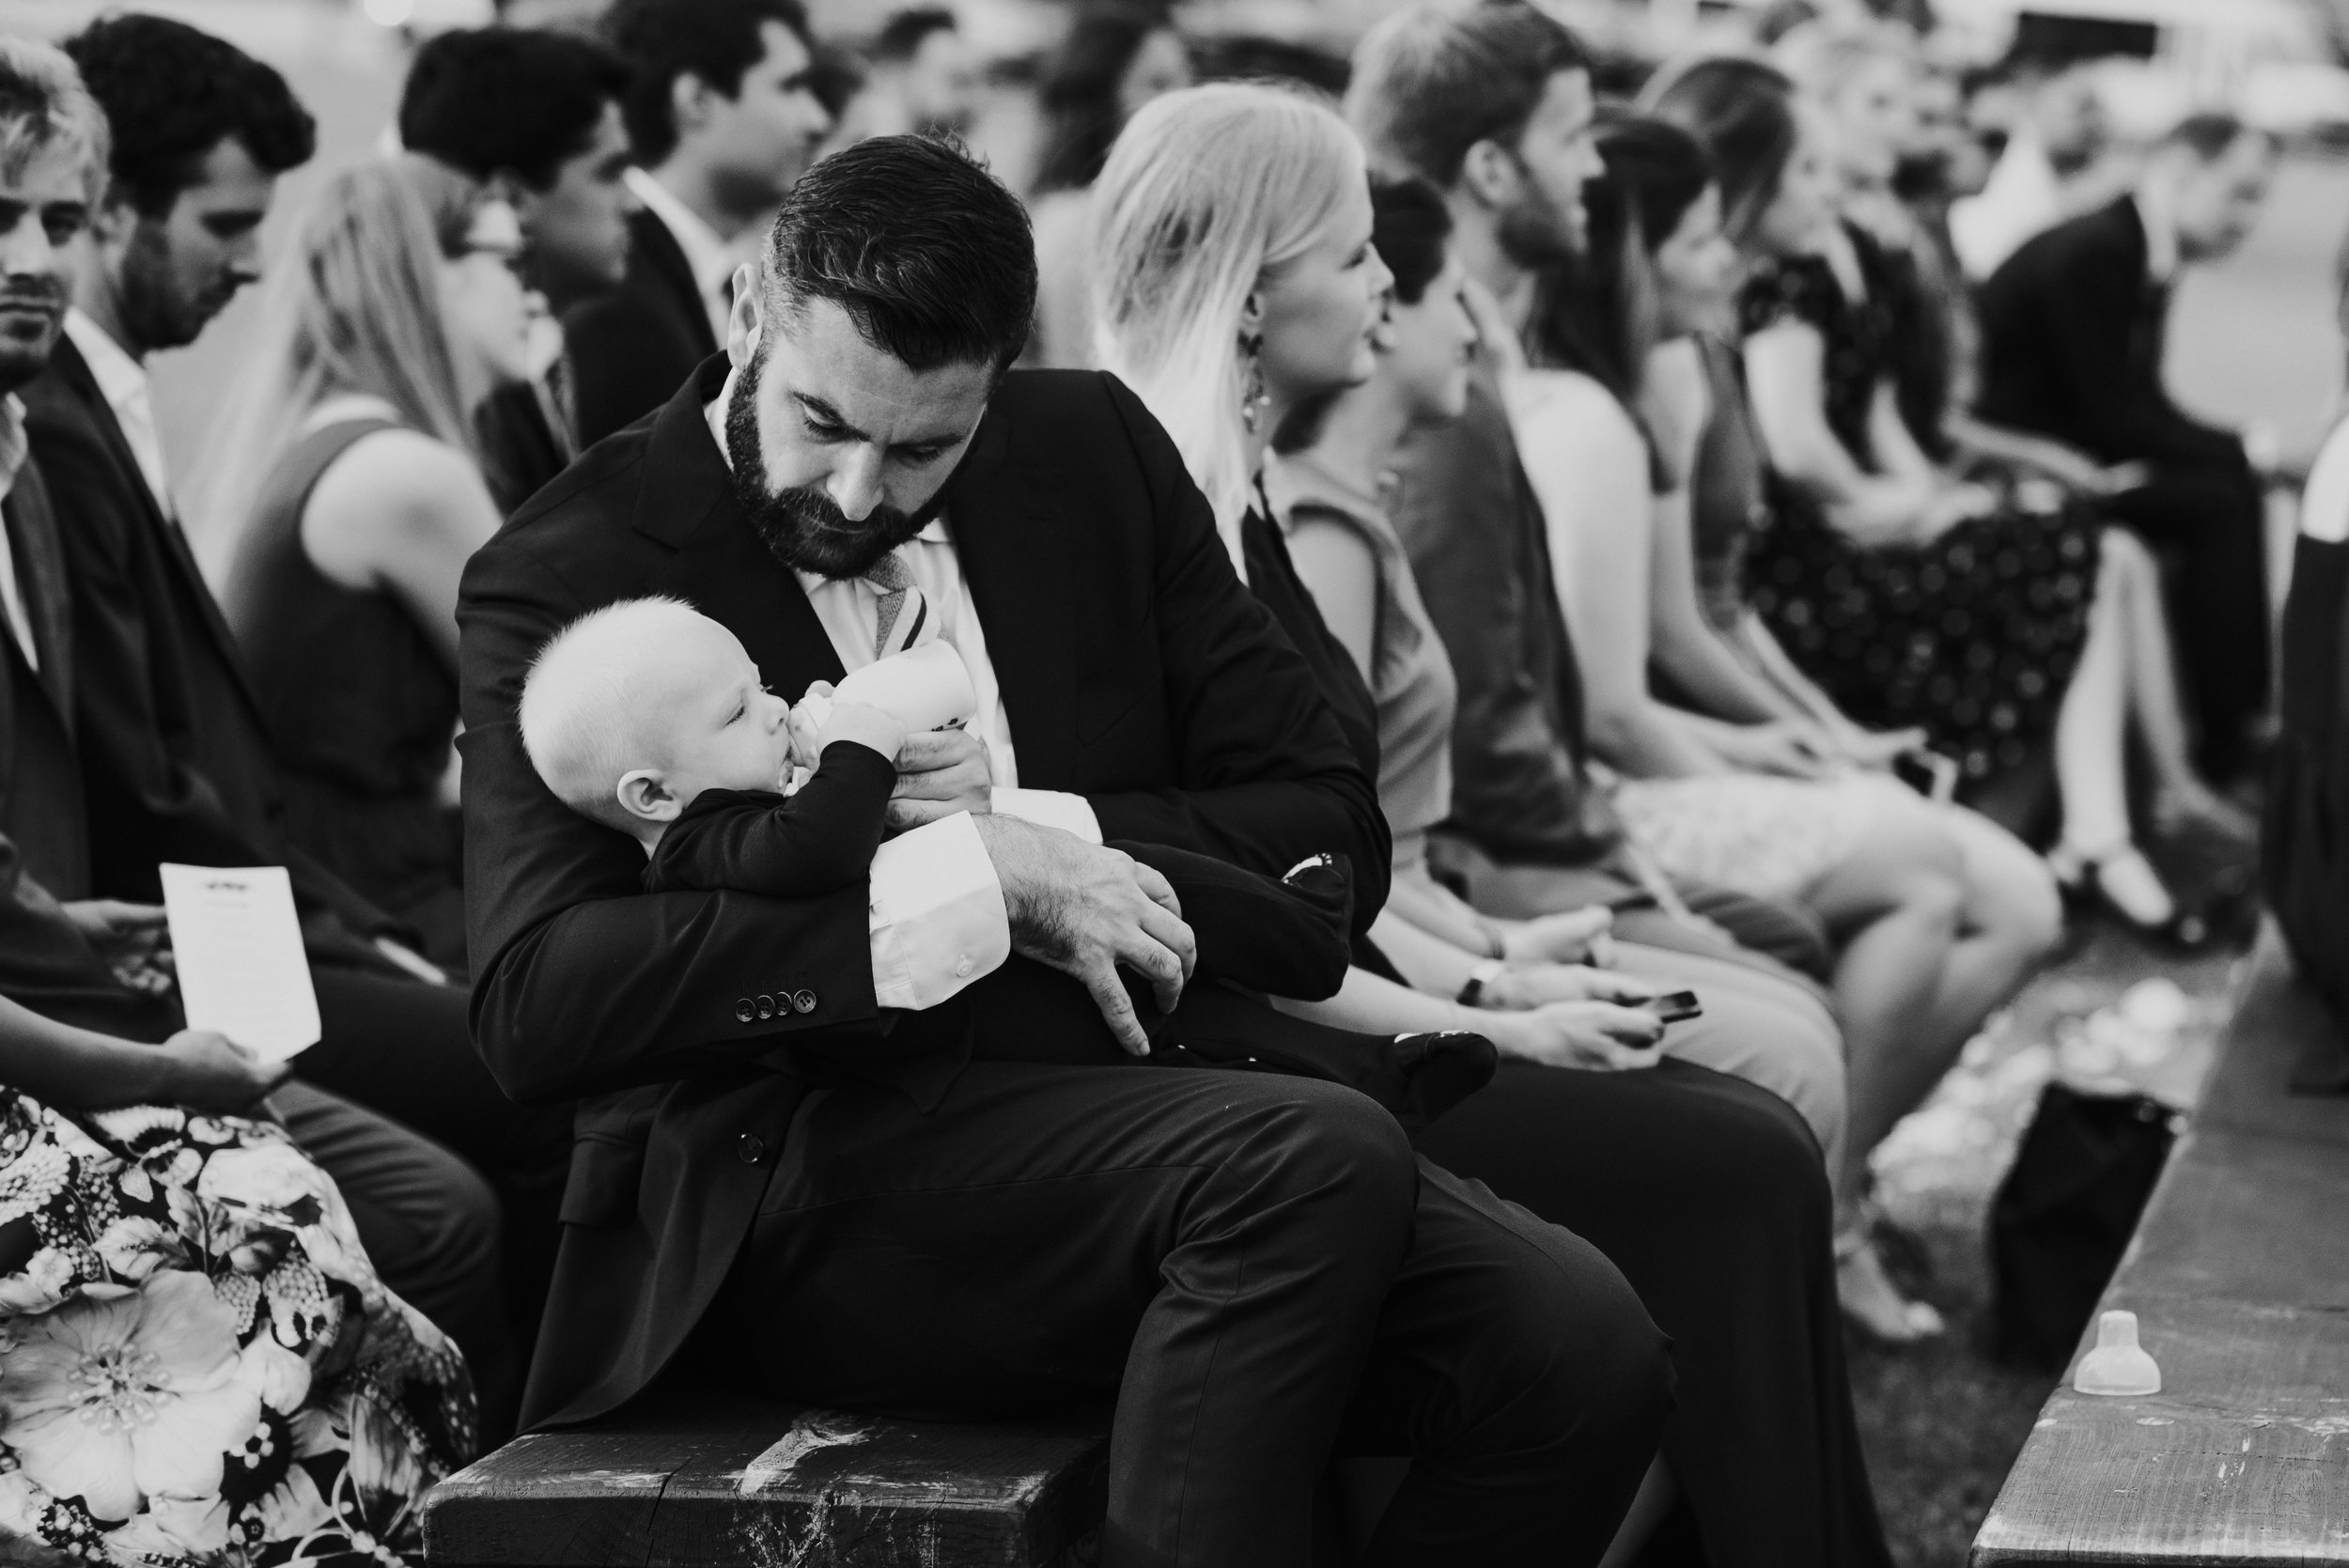 Father feeding his son during a wedding.